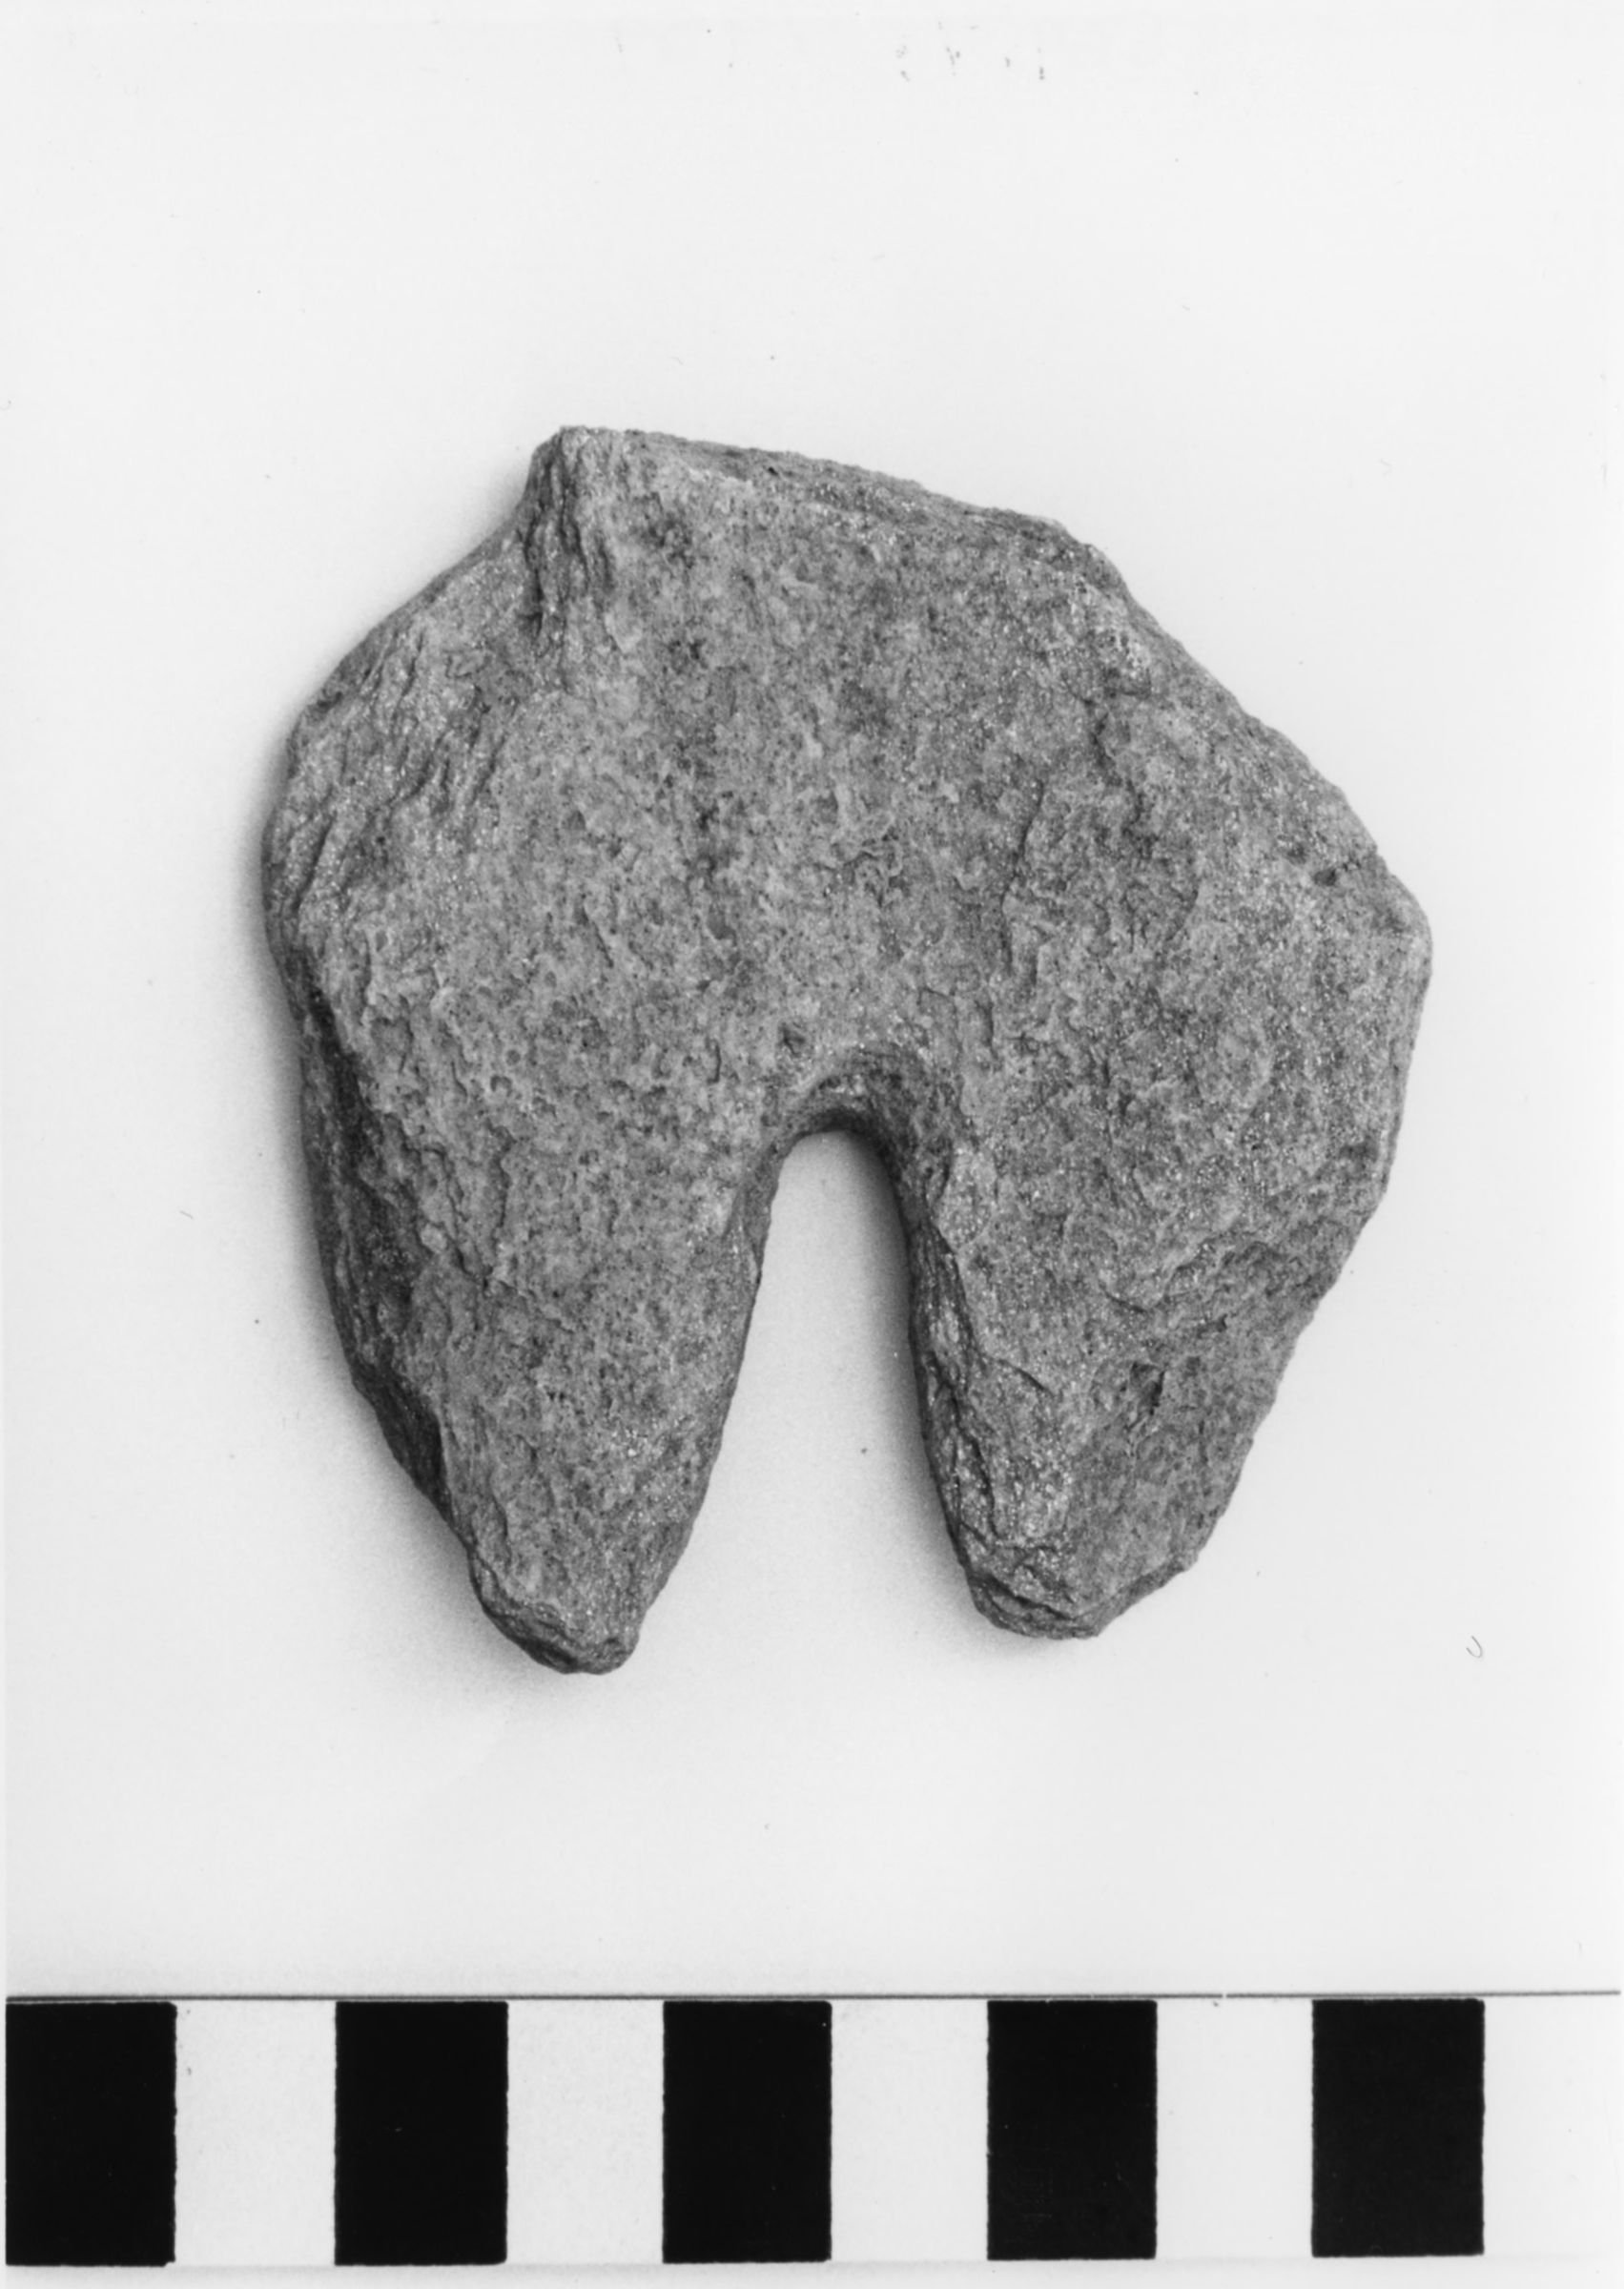 Lower Body and Feet of a Prehistoric Idol